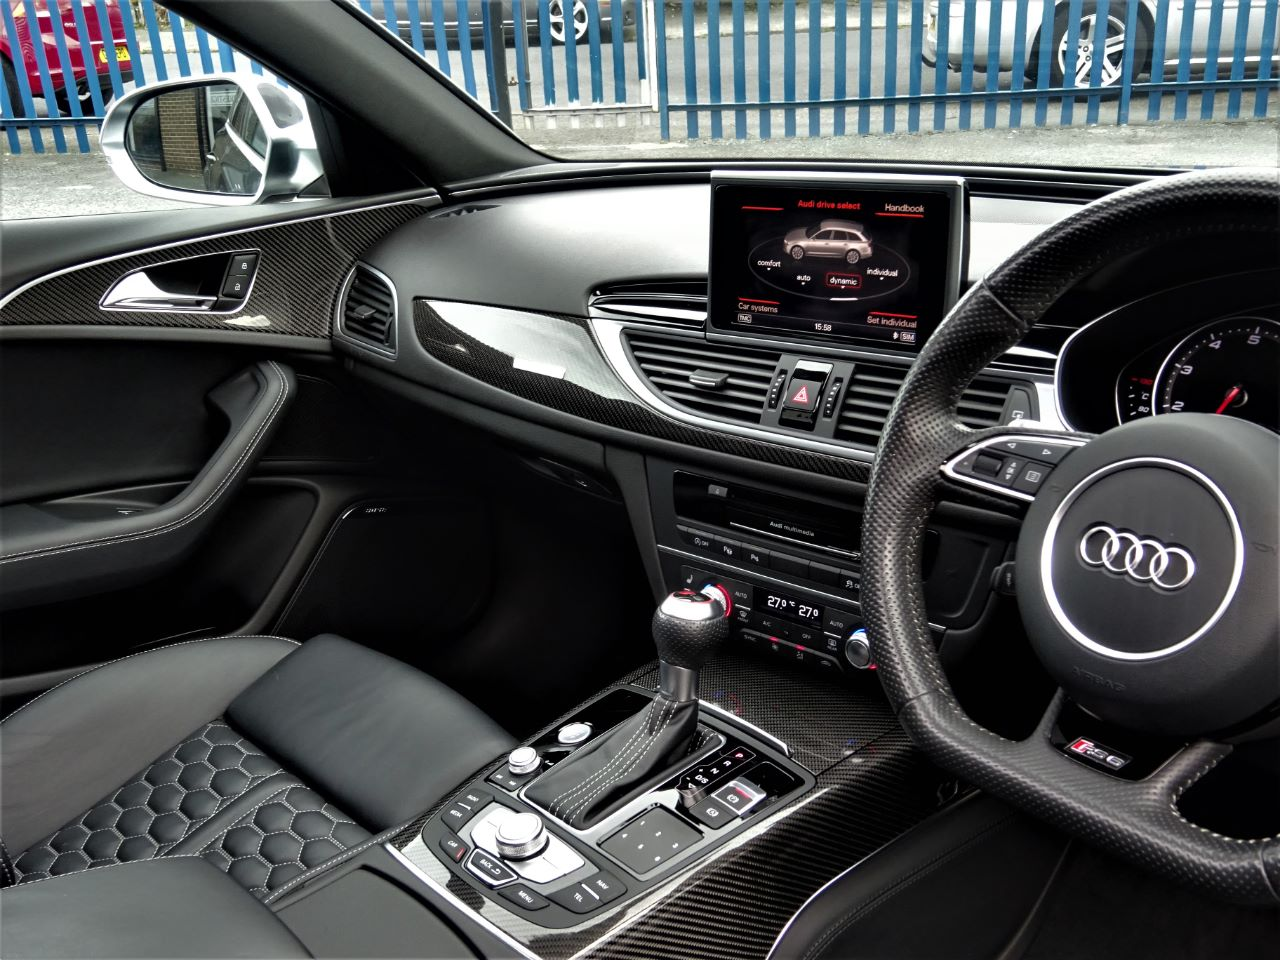 Audi RS6 4.0T FSI V8 Bi-Turbo RS6 Quattro WITH ALL THE EXTRAS WARRANTY RECENT SERVICE TYRES SOFT DOORS 64 REG Estate Petrol Grey